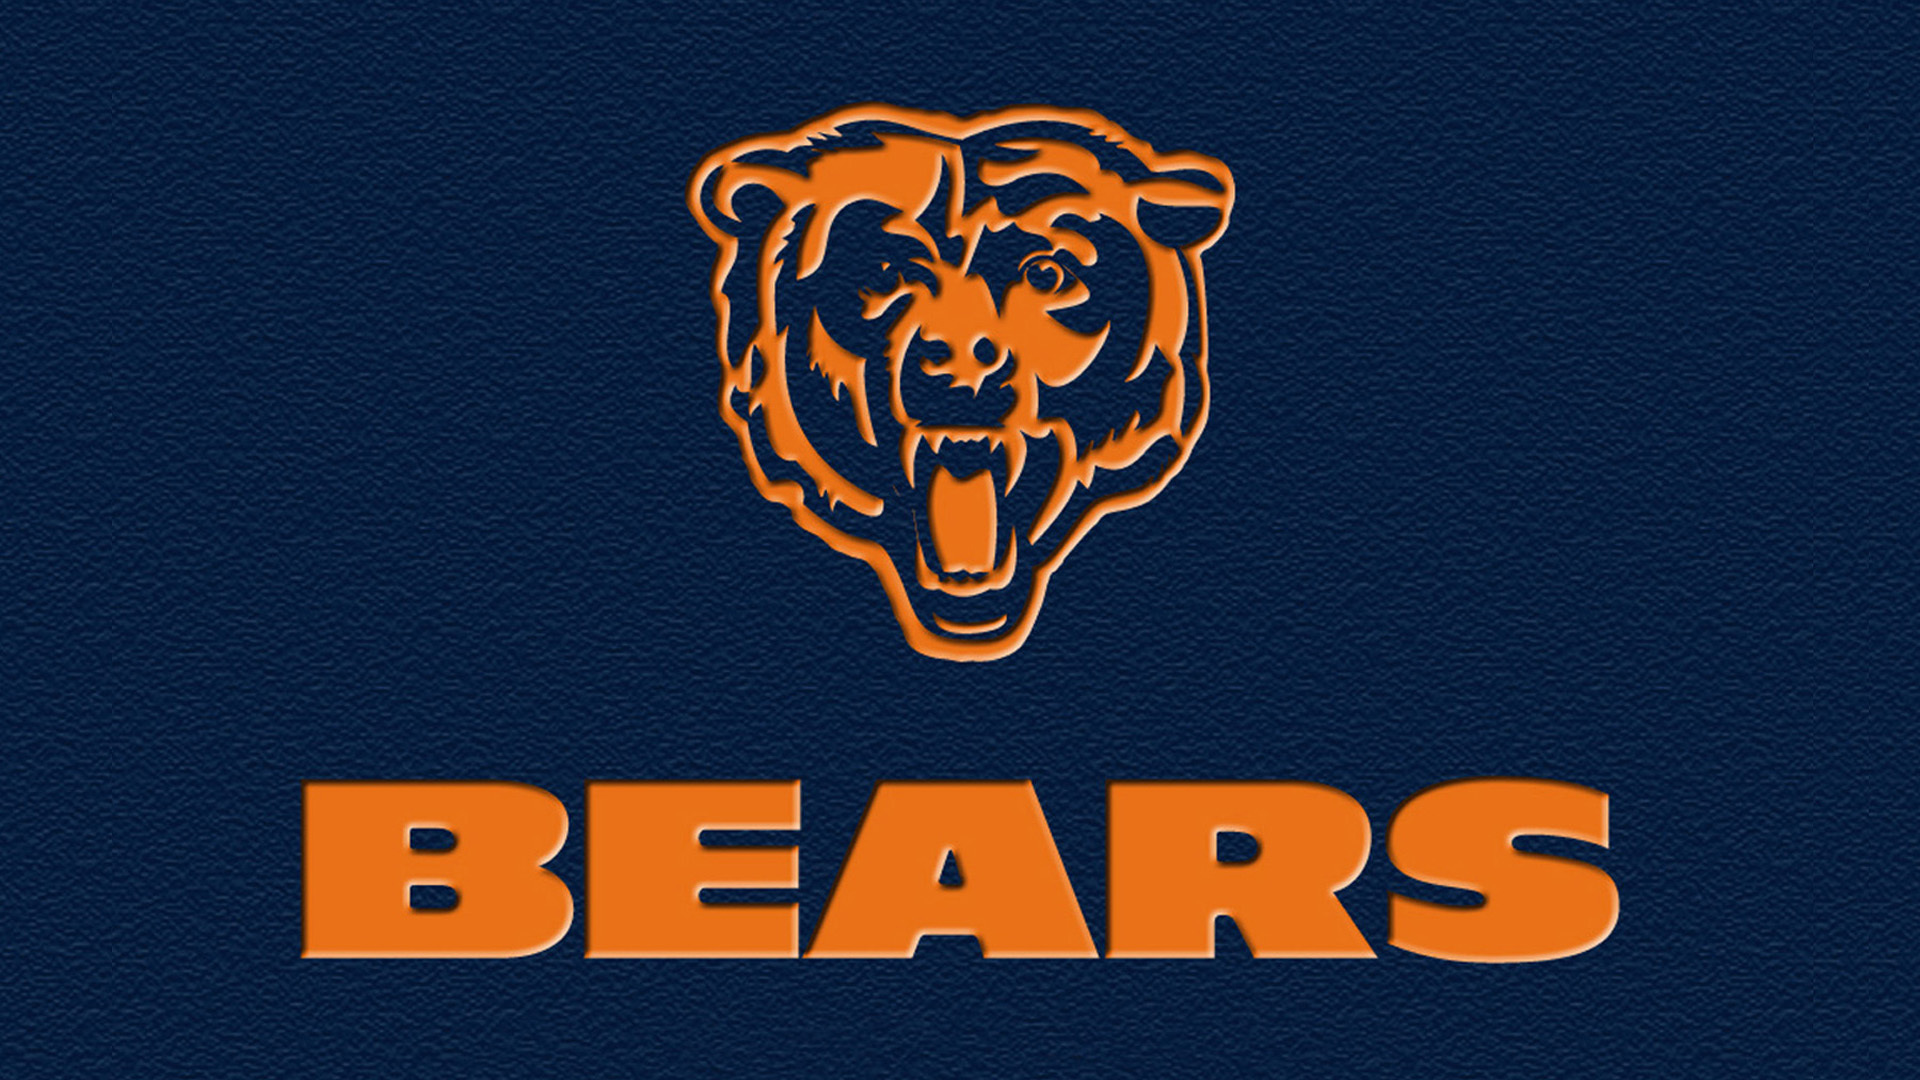 chicago bears wallpapers images photos pictures backgrounds